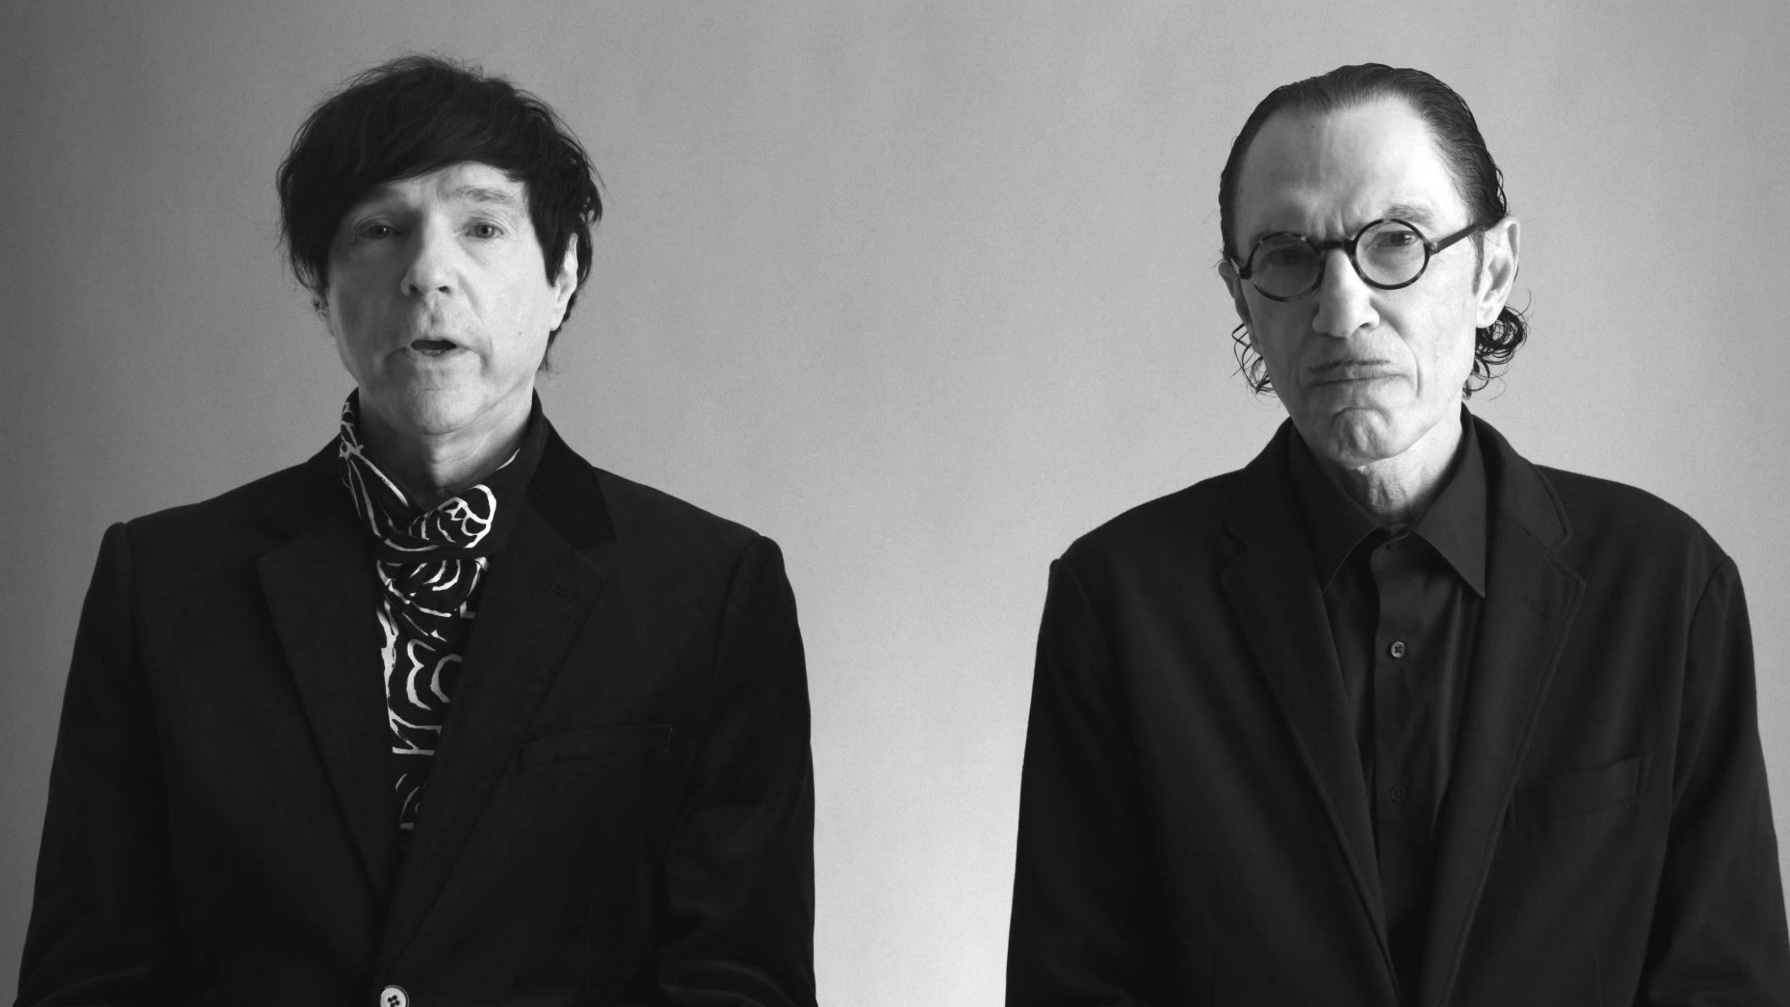 The Sparks Brothers: Frequently Asked Questions About Sparks